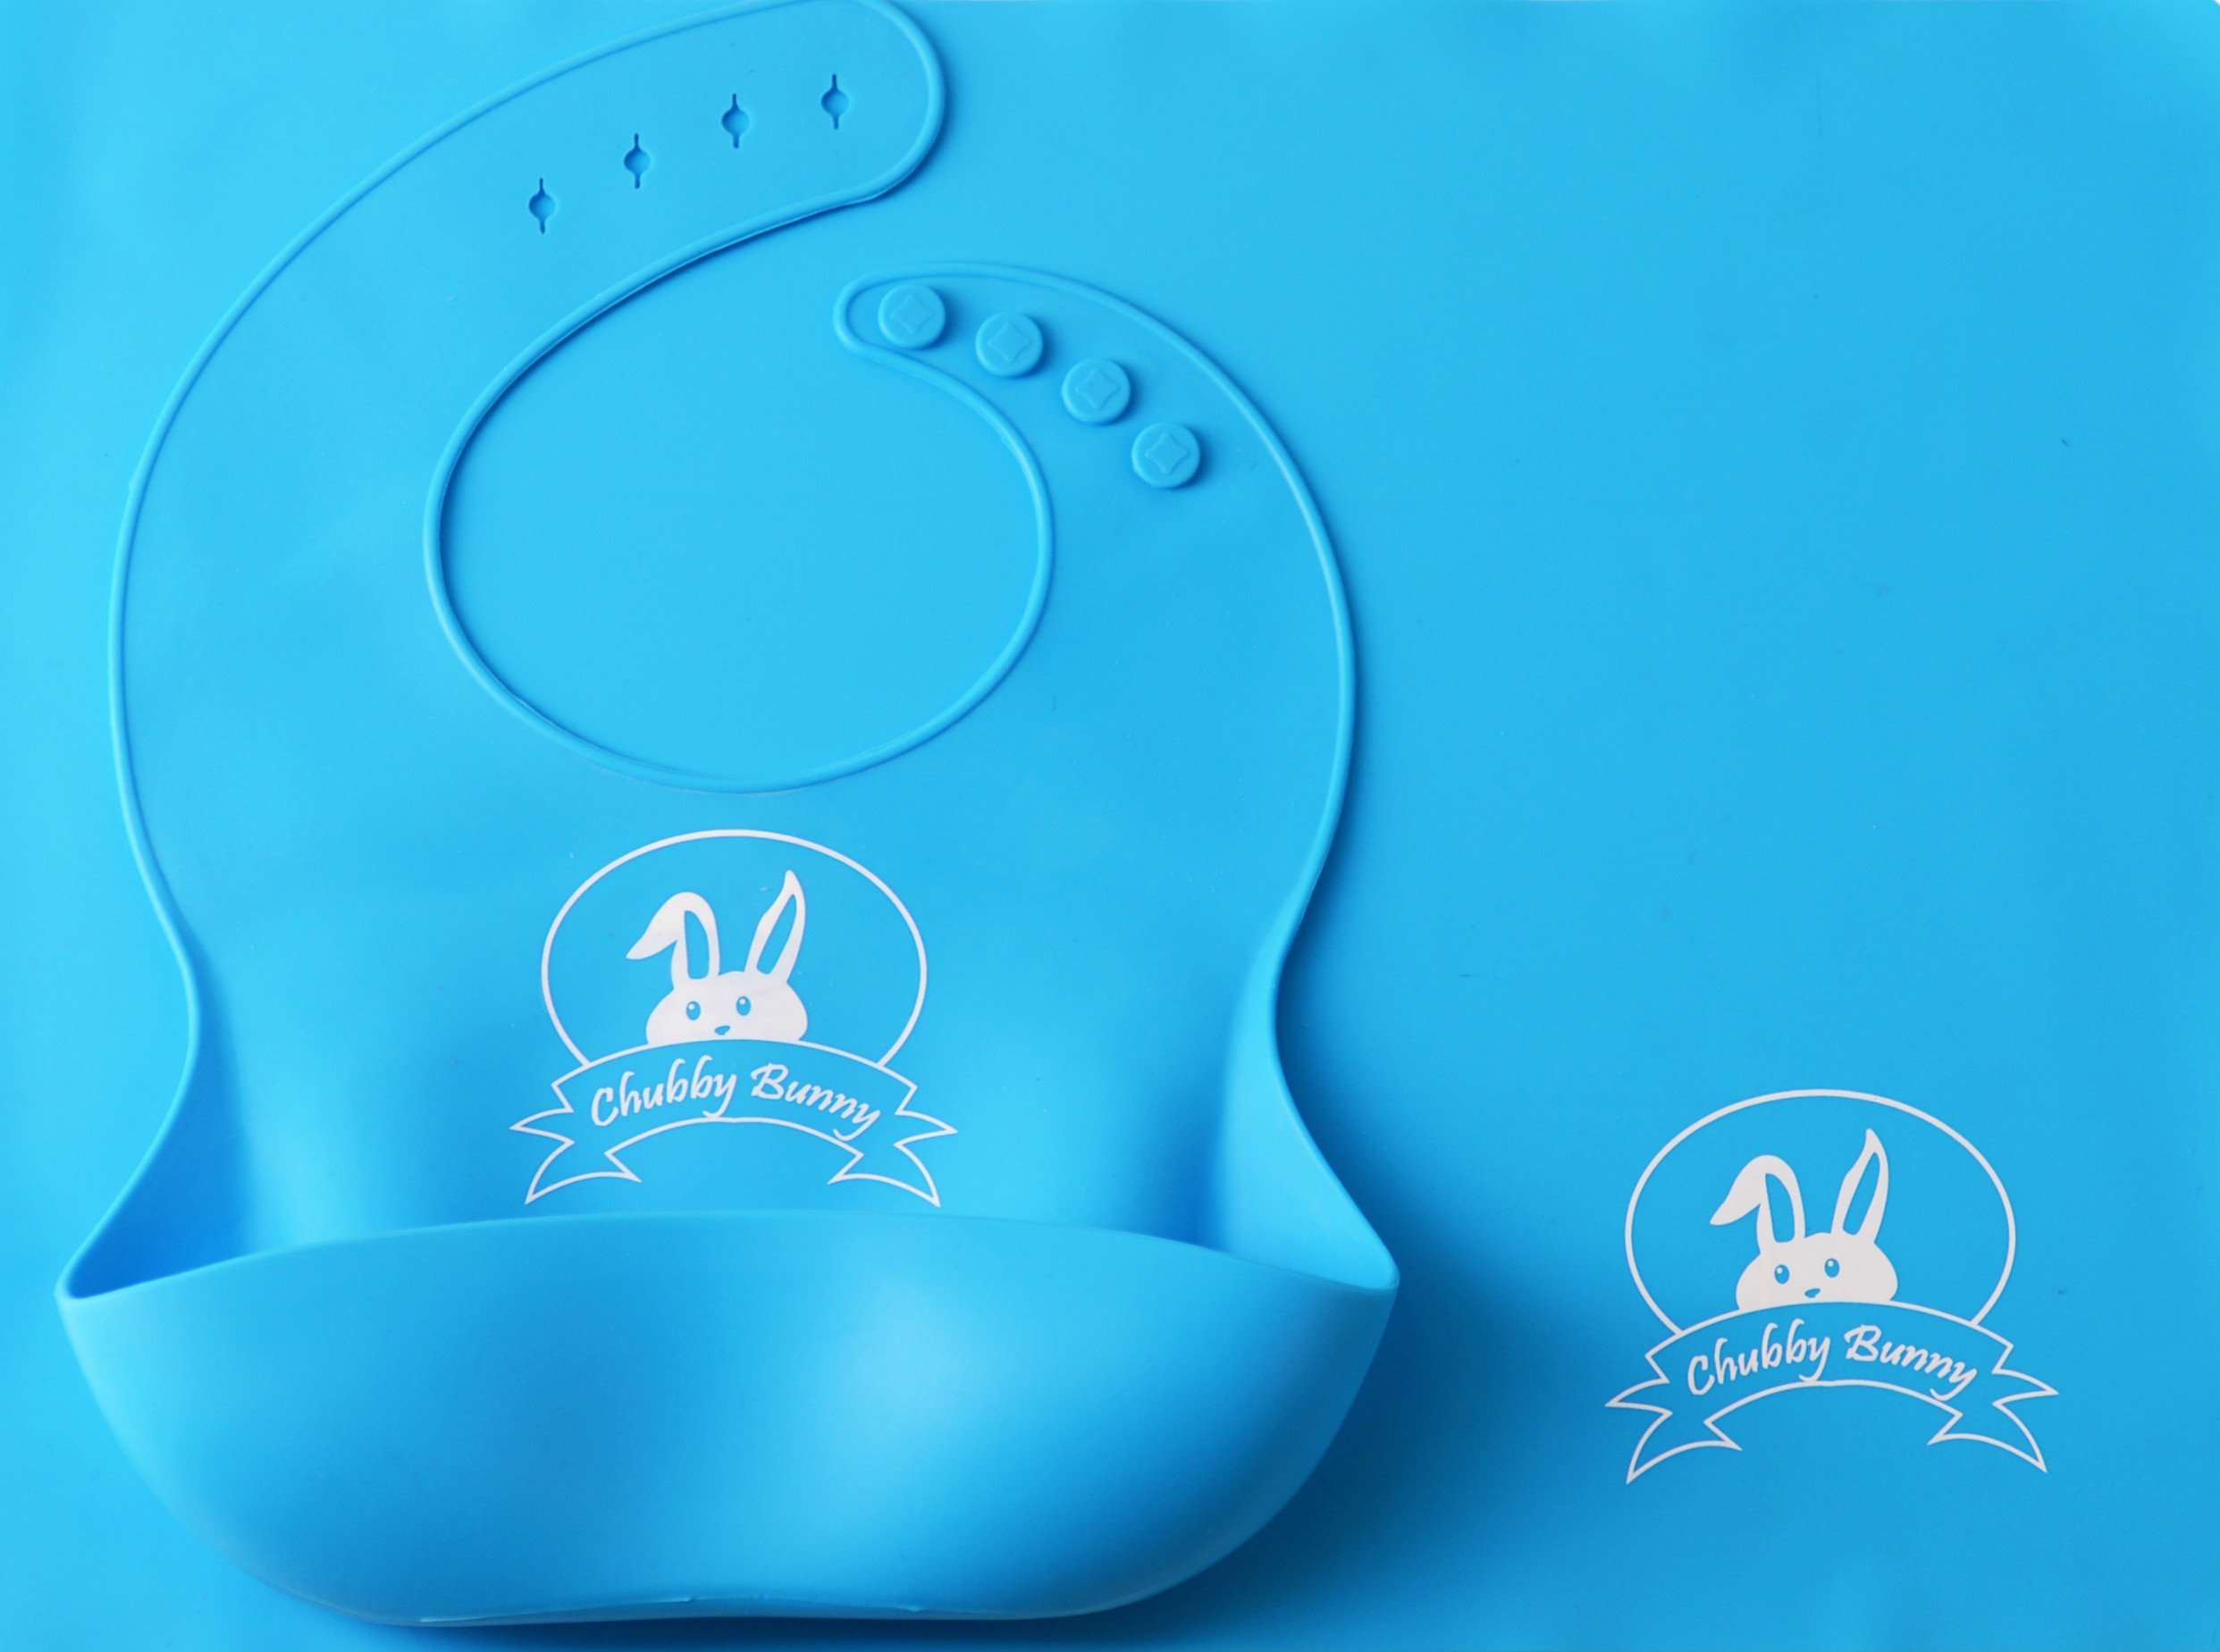 Premium Silicone Bib and Placemat with Pocket Set for Baby & Kids - Food Grade Silicone, Reusable, Dishwasher Safe (Blue)